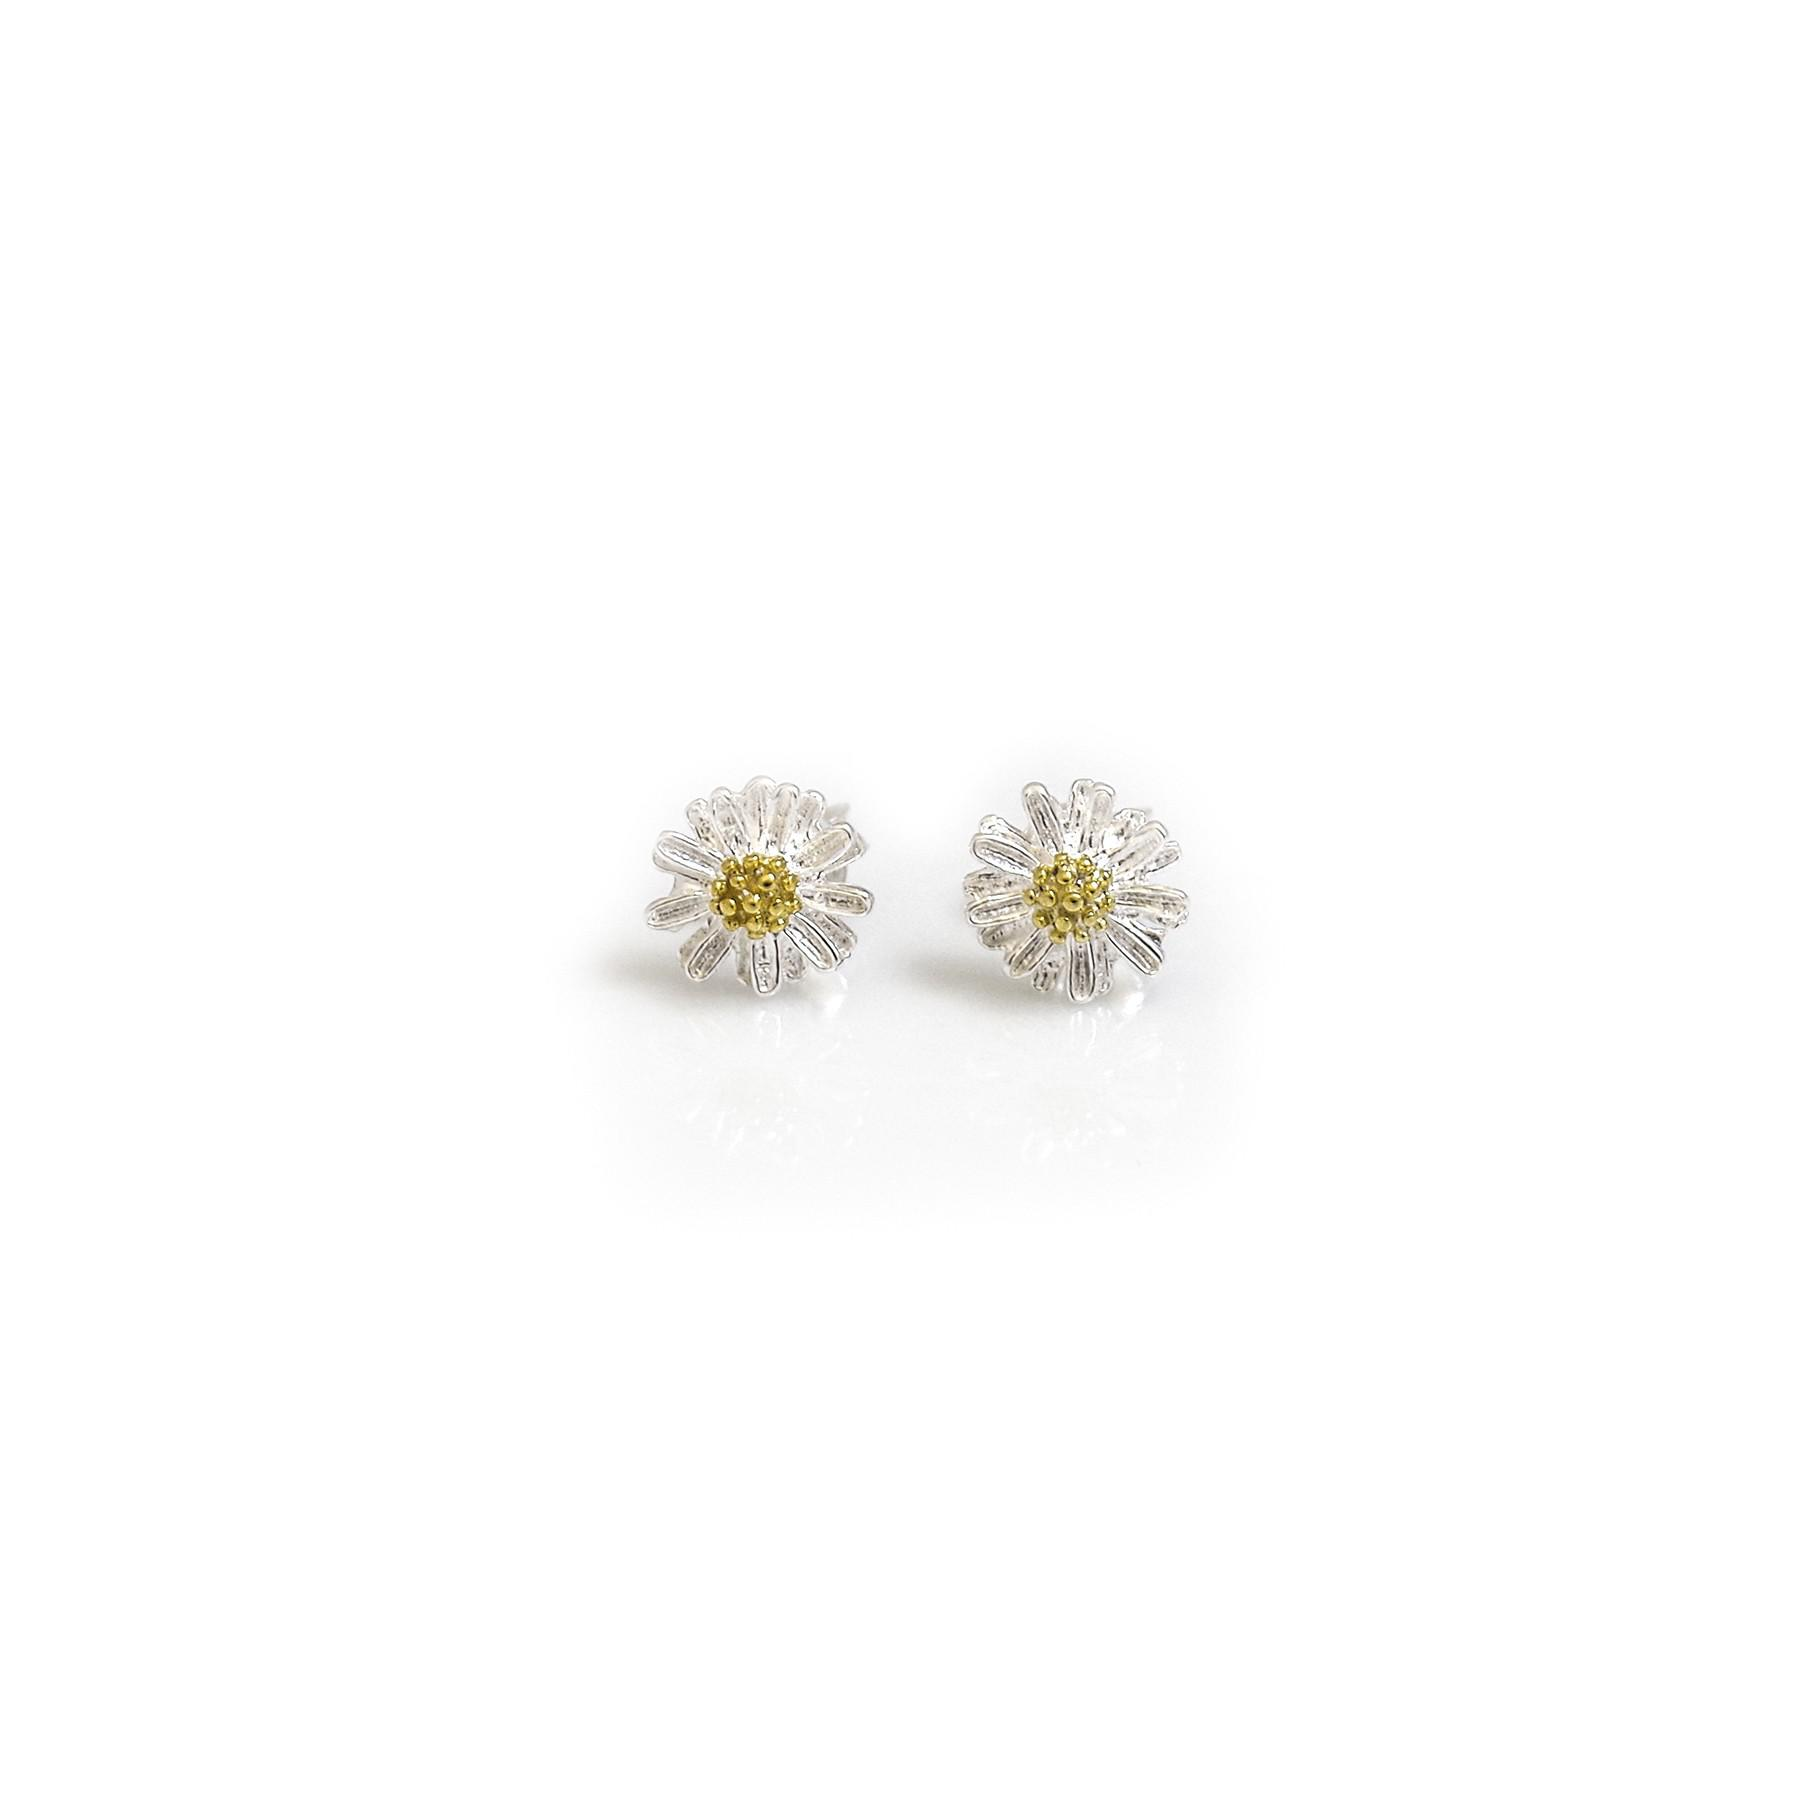 403fc9e67 Sterling Silver & 9ct Gold Vermeil Daisy Stud Earrings. Loading zoom